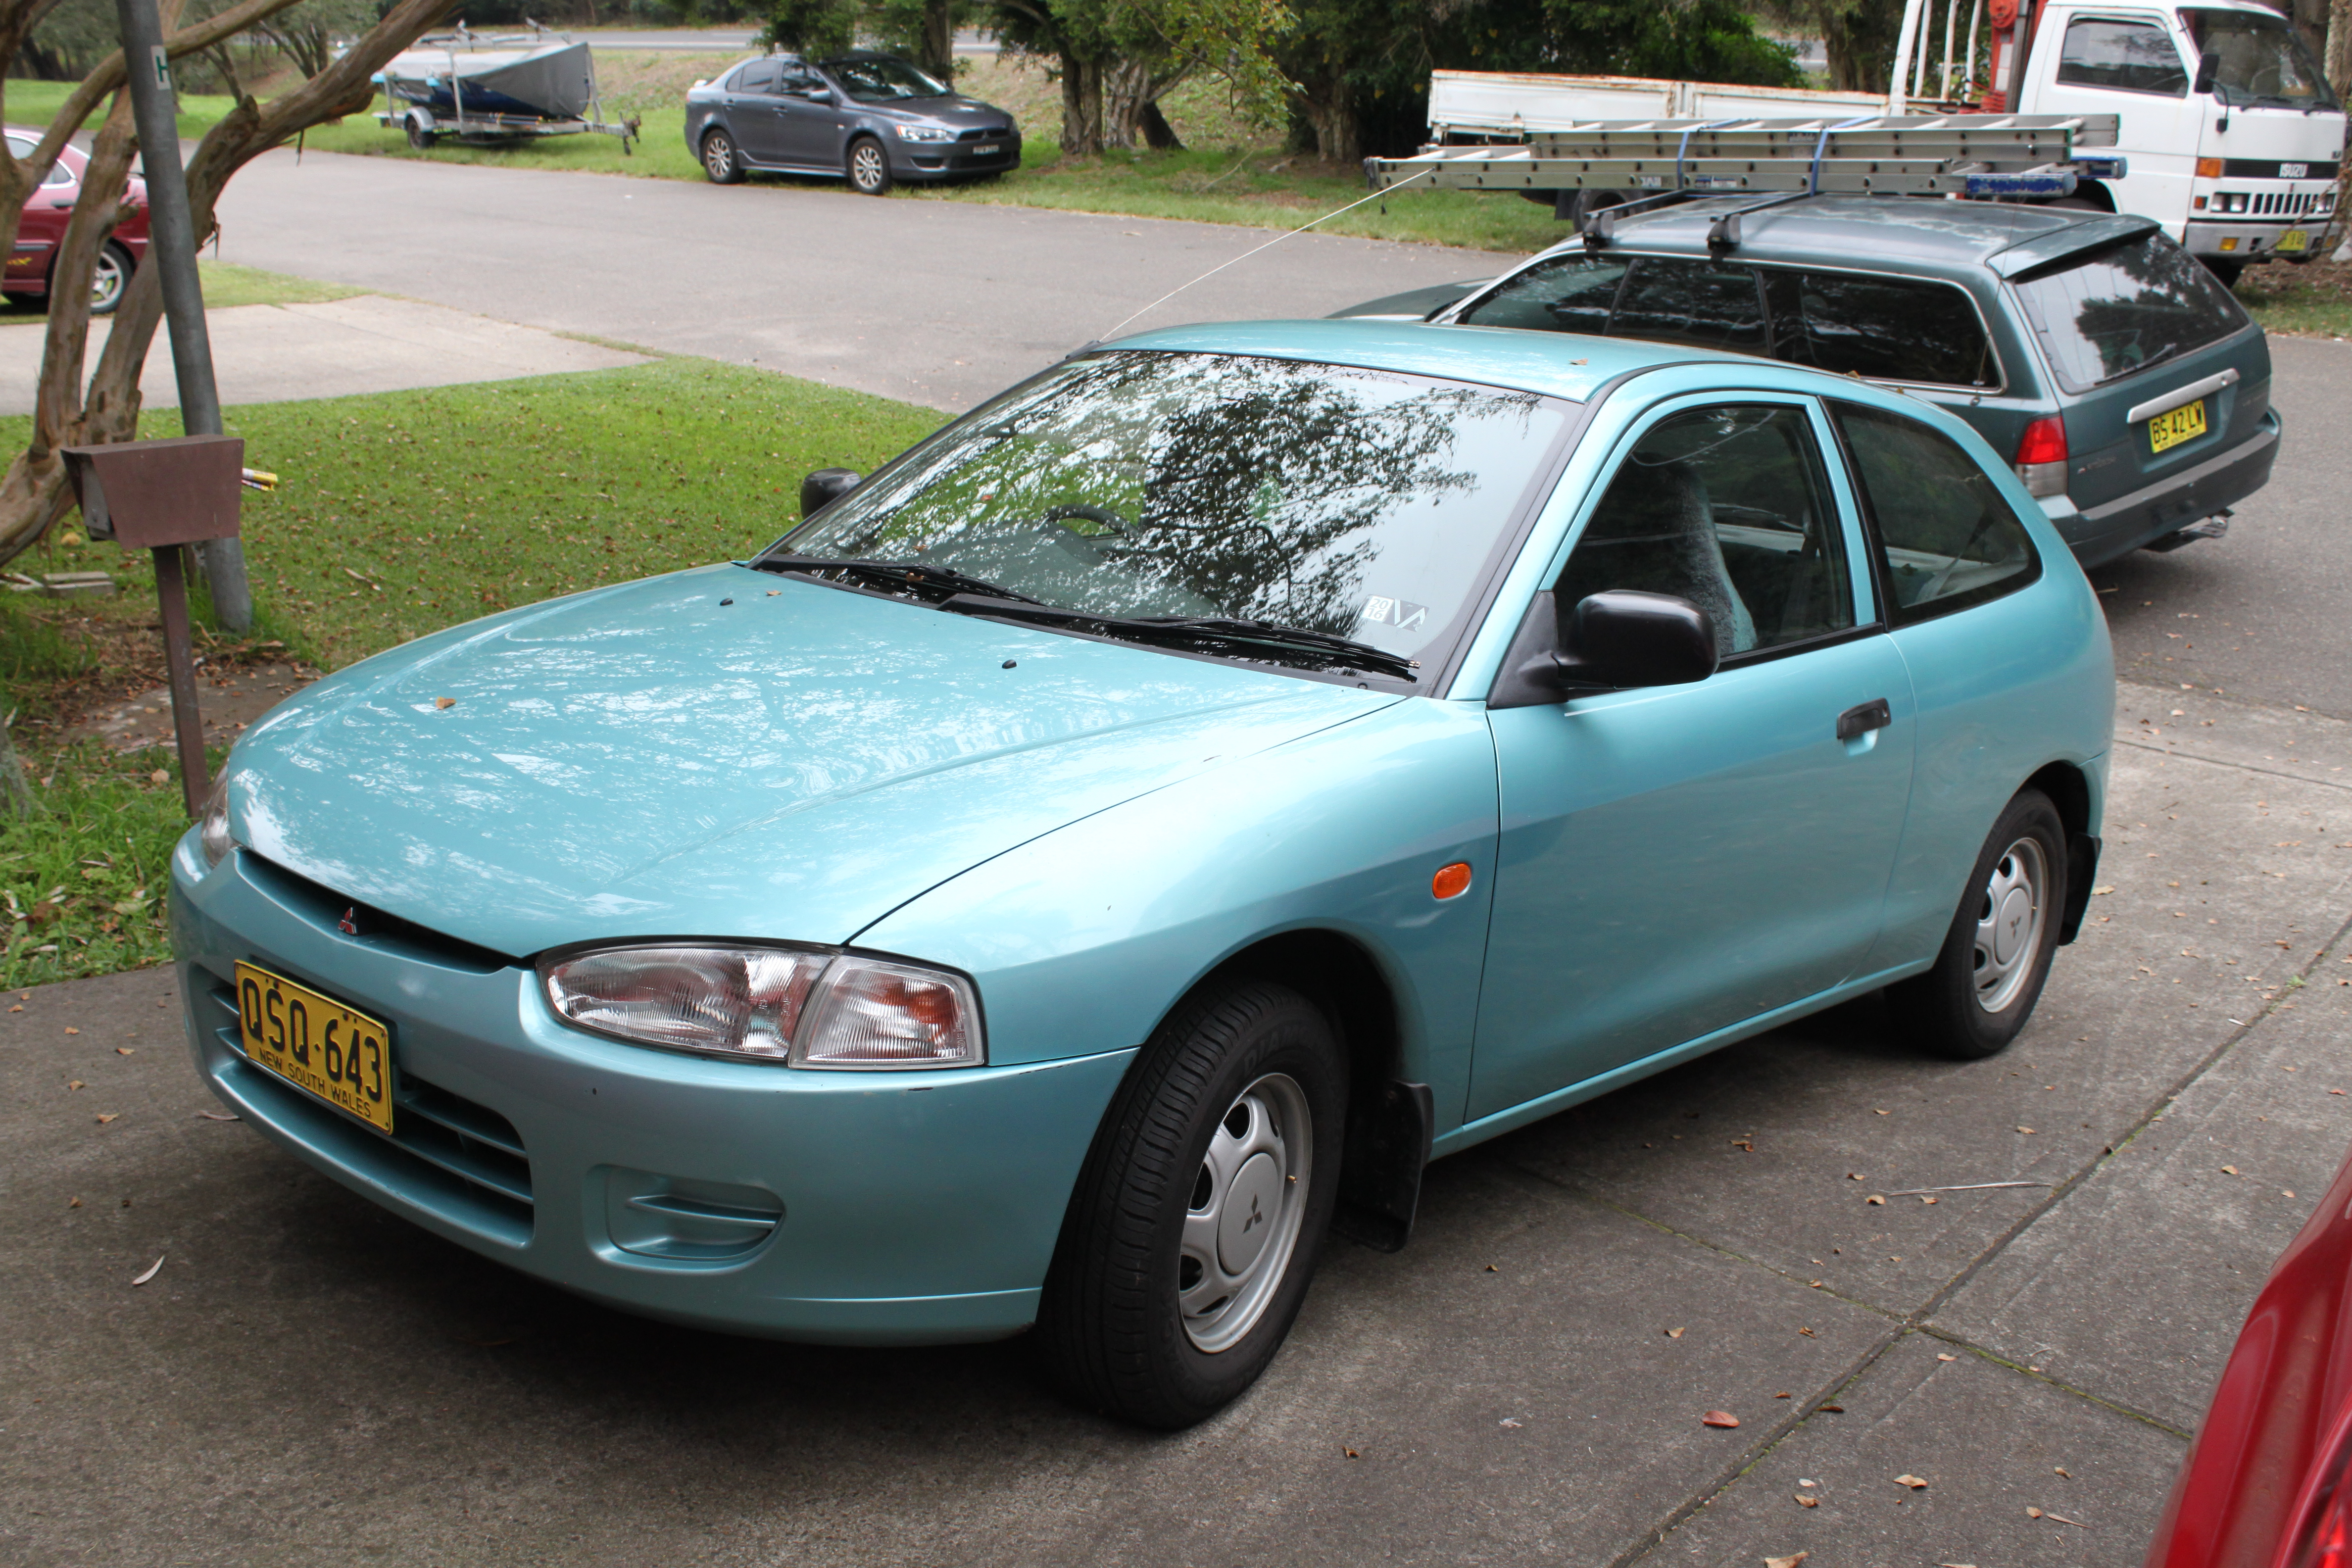 File:1997 Mitsubishi Mirage (CE) 3-door hatchback (26873996252 ...